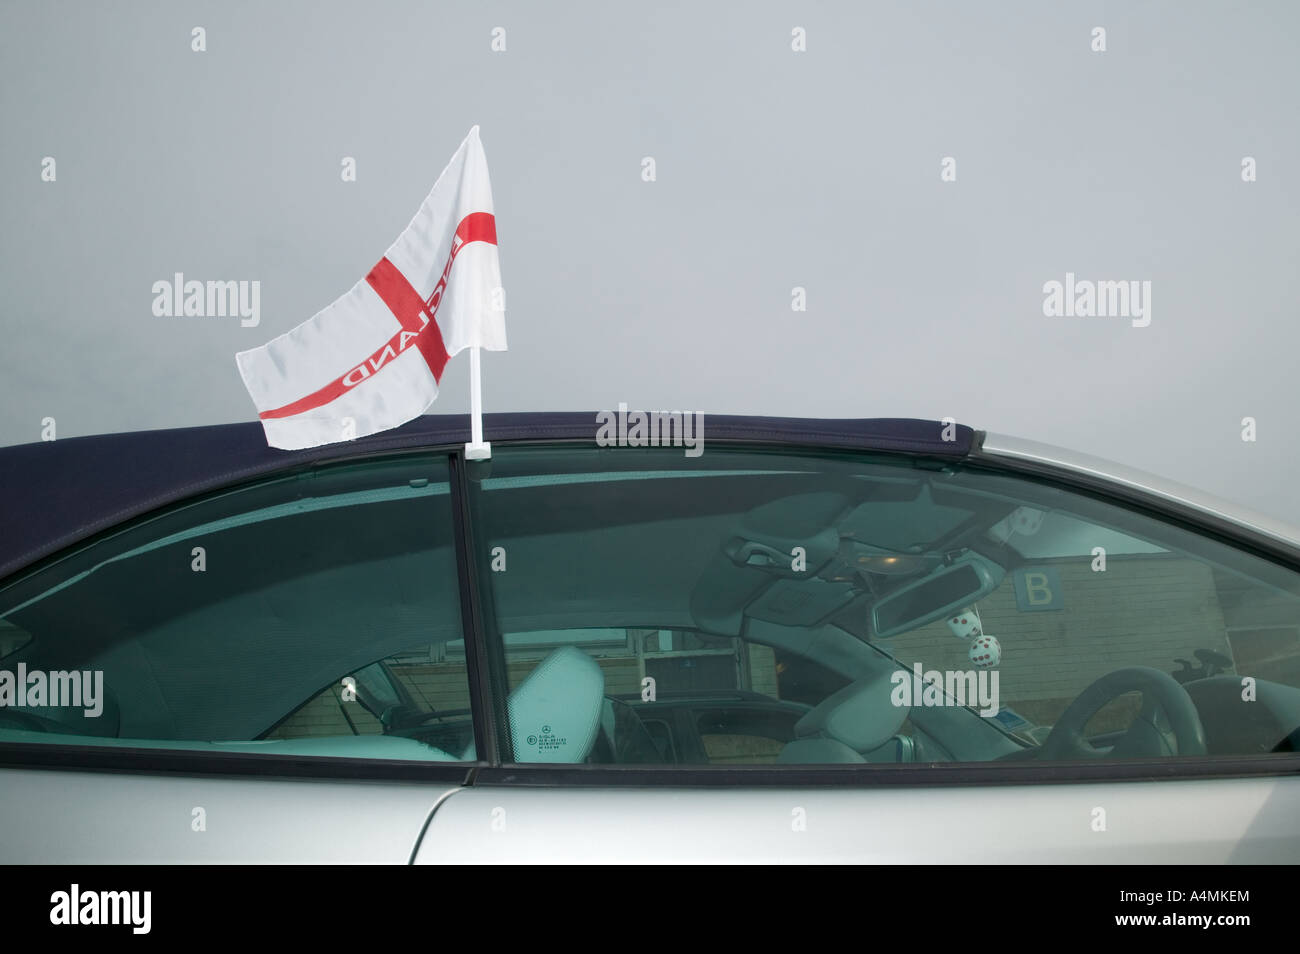 England Supporter - Stock Image